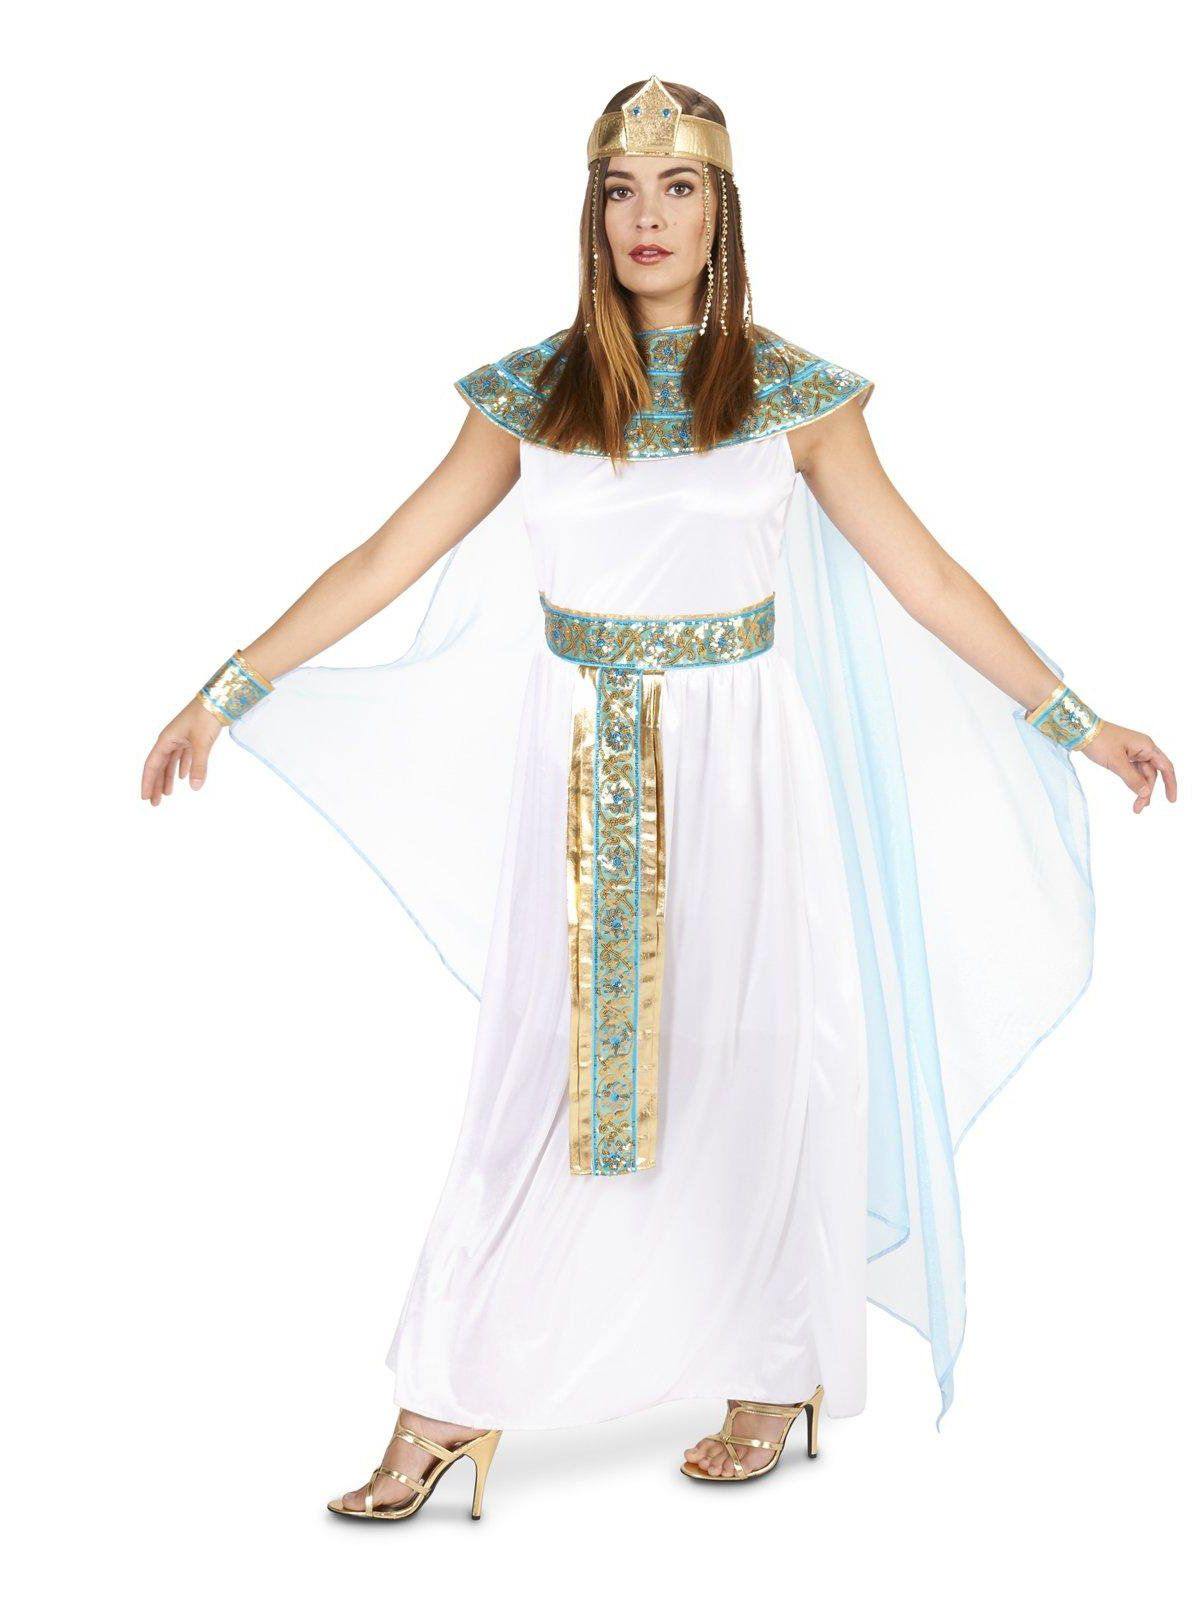 Pharaohu0027s Queen Costume For Adults  sc 1 st  Wholesale Halloween Costumes & Pharaohu0027s Queen Costume For Adults - Womens Costumes for 2018 ...